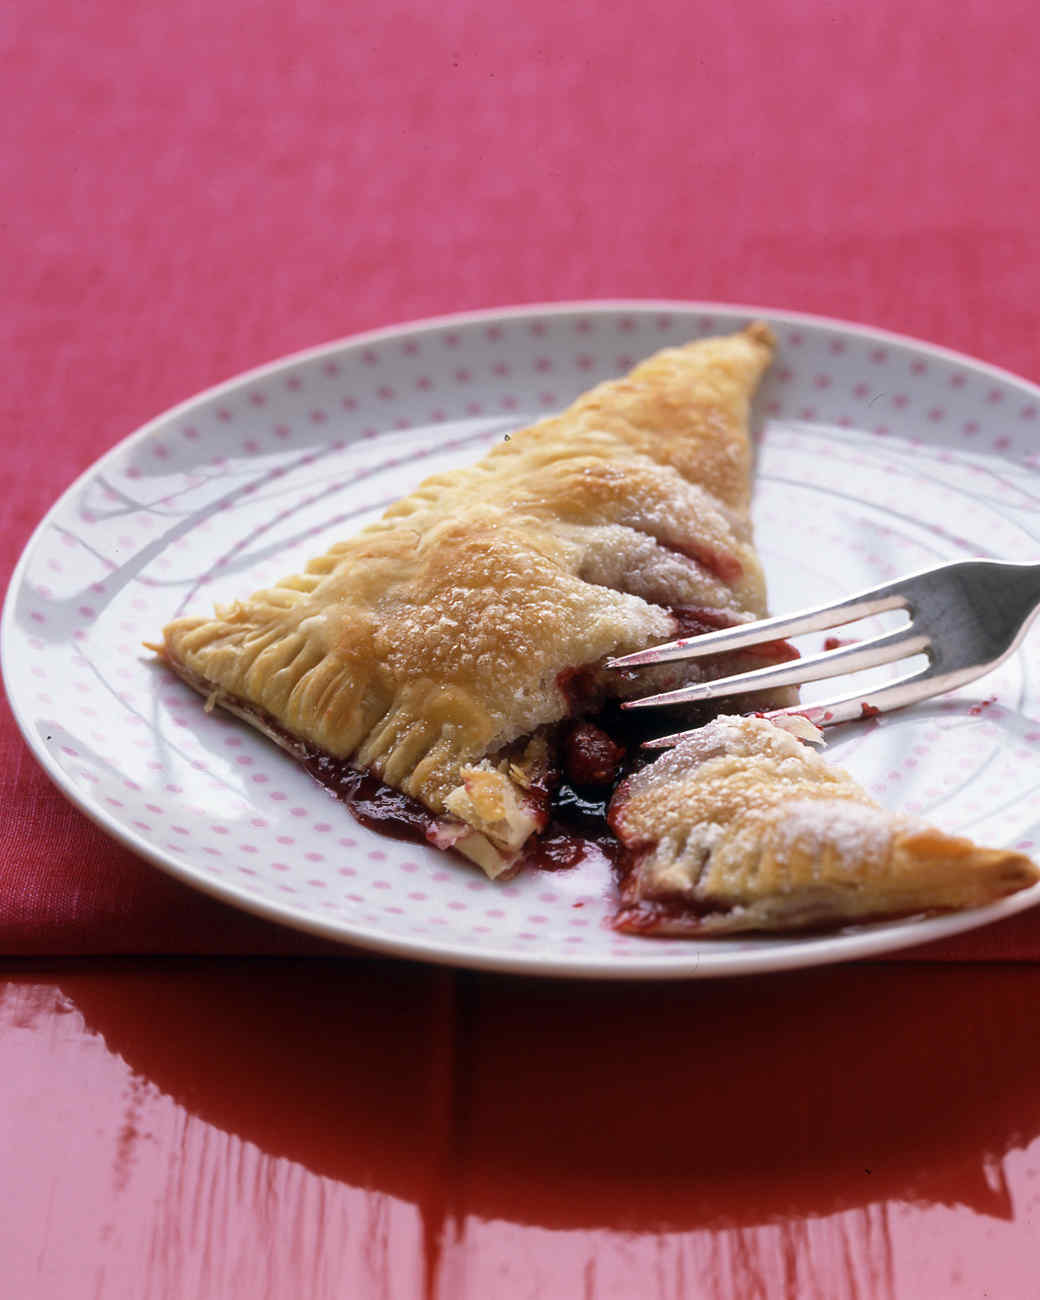 edf_jun05_dessert_turnover.jpg